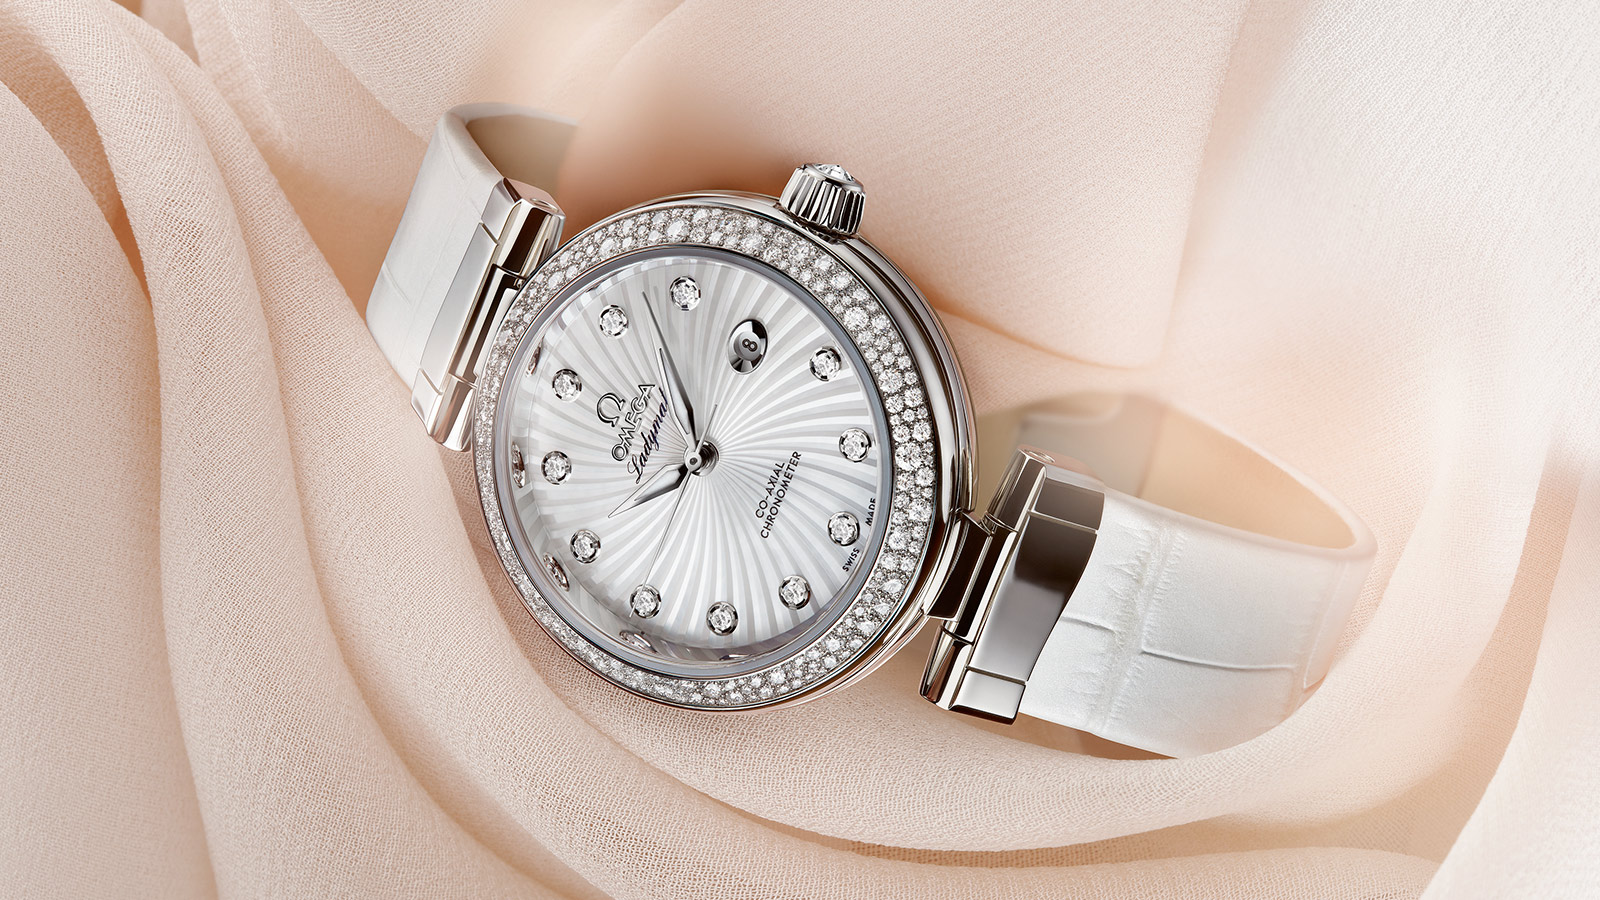 De Ville Ladymatic Ladymatic Omega Co‑Axial 34 mm - 425.38.34.20.55.001 - View 1